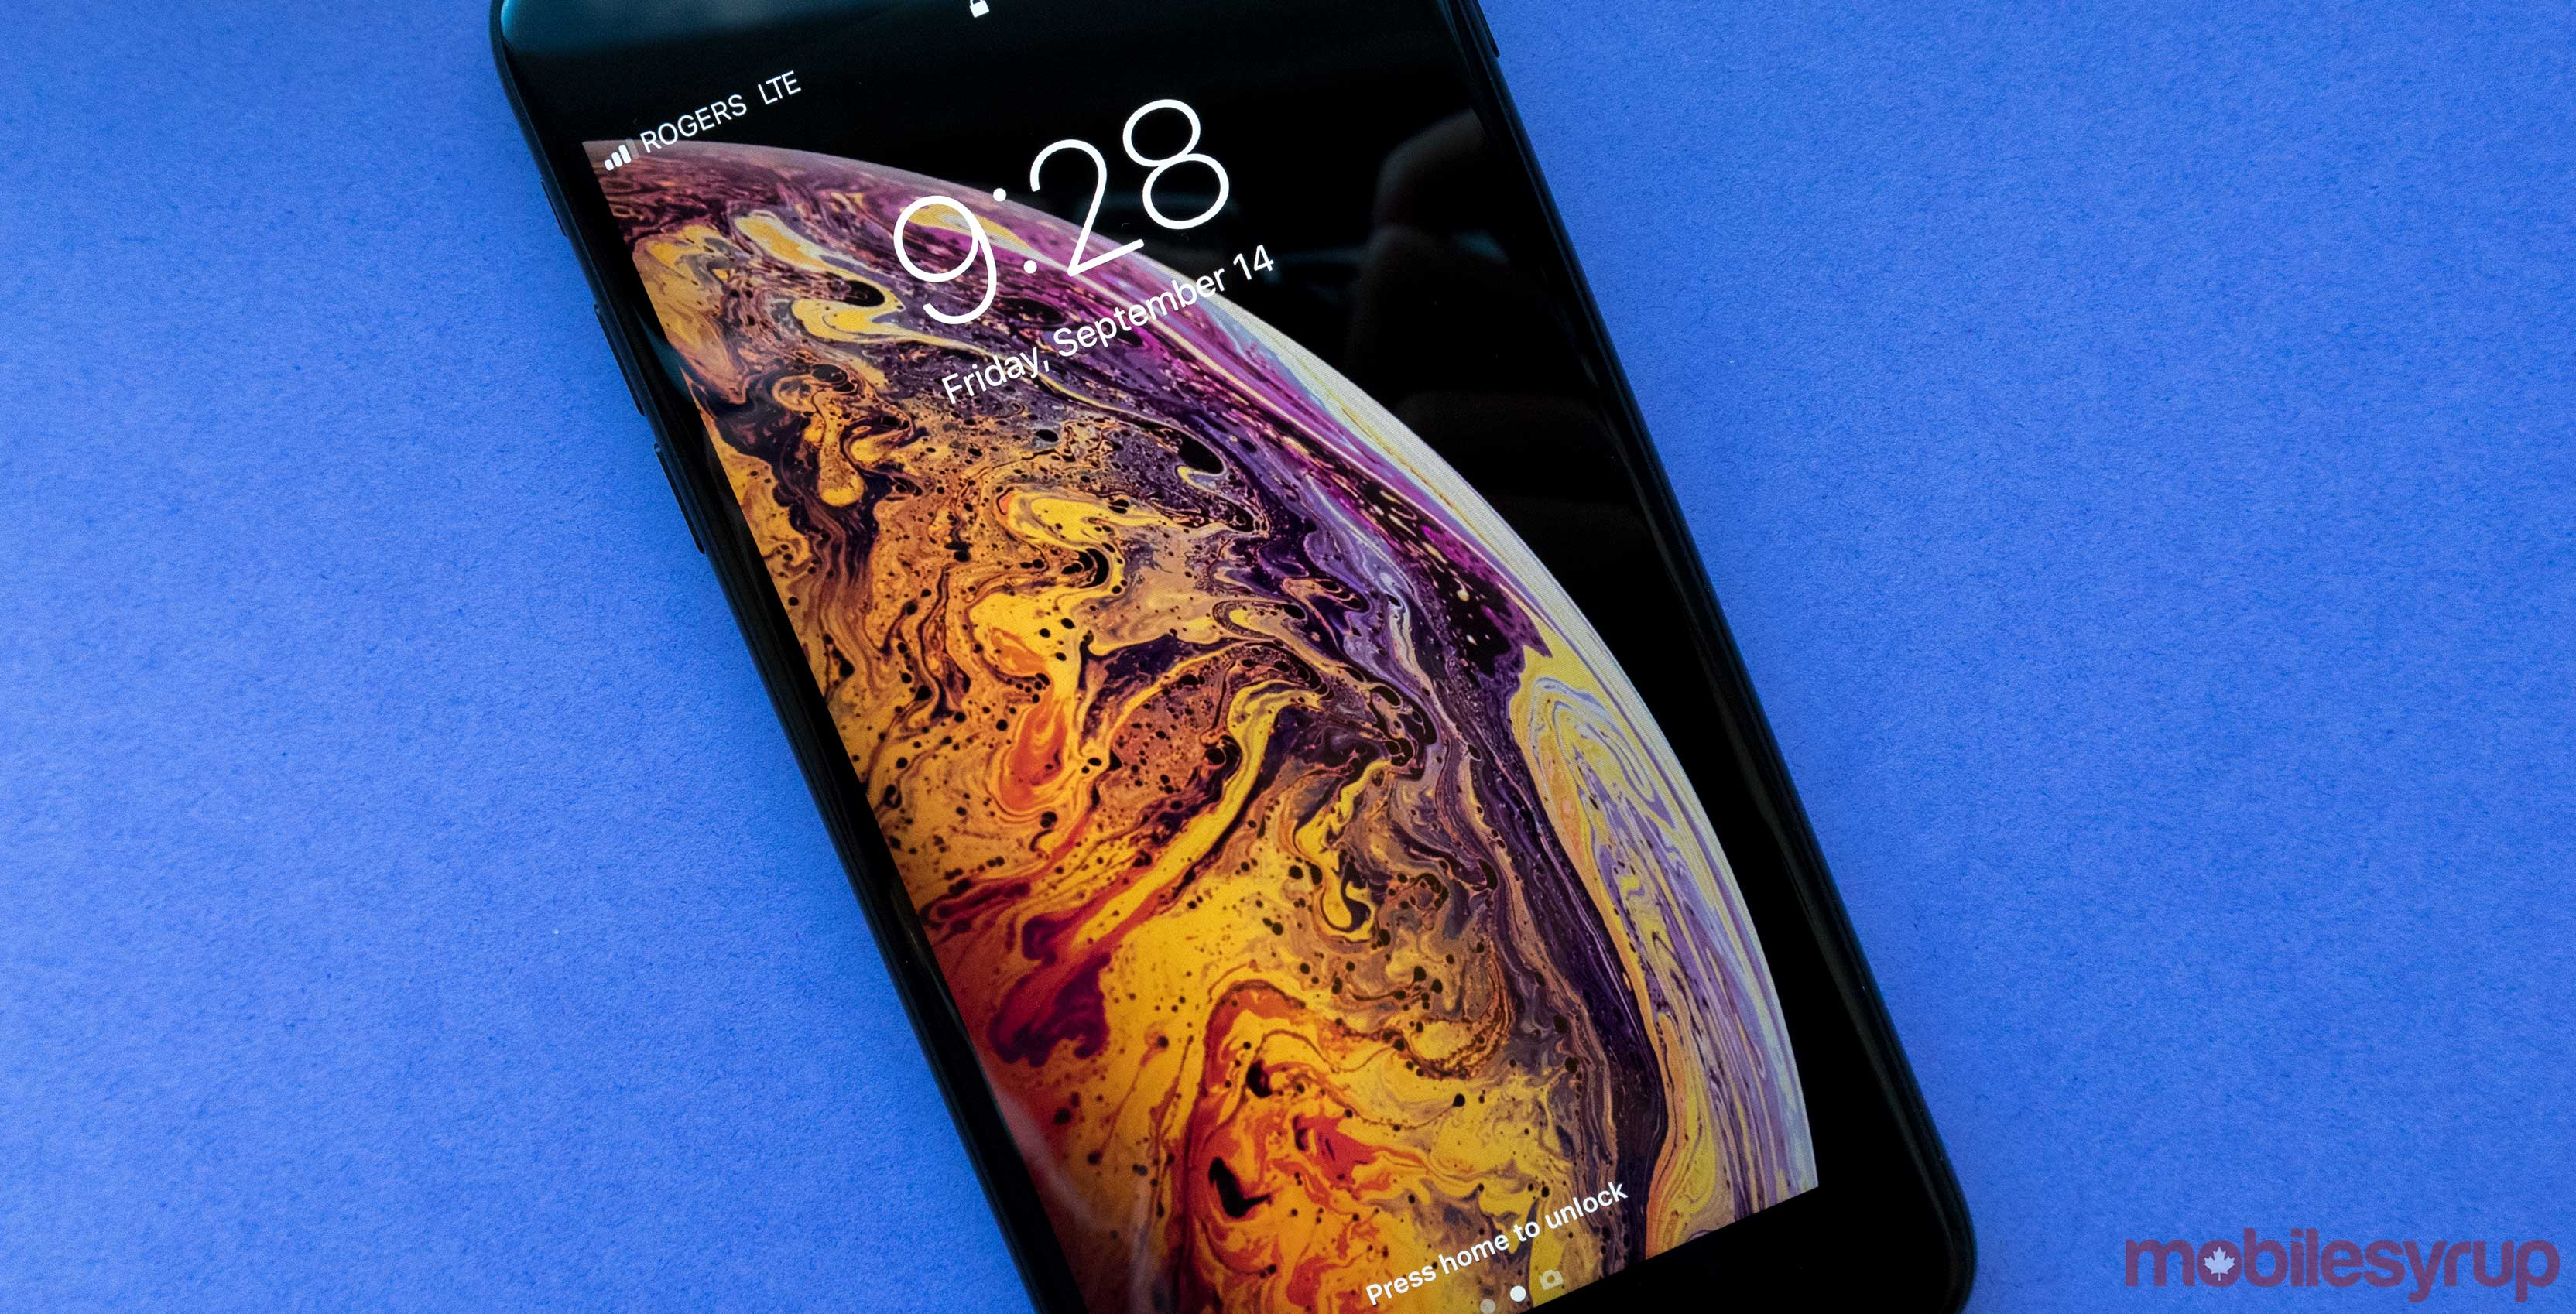 release ios 12 until monday september 17th but that hasnt stopped leakers from extracting and sharing the wallpapers that come with the new iphones